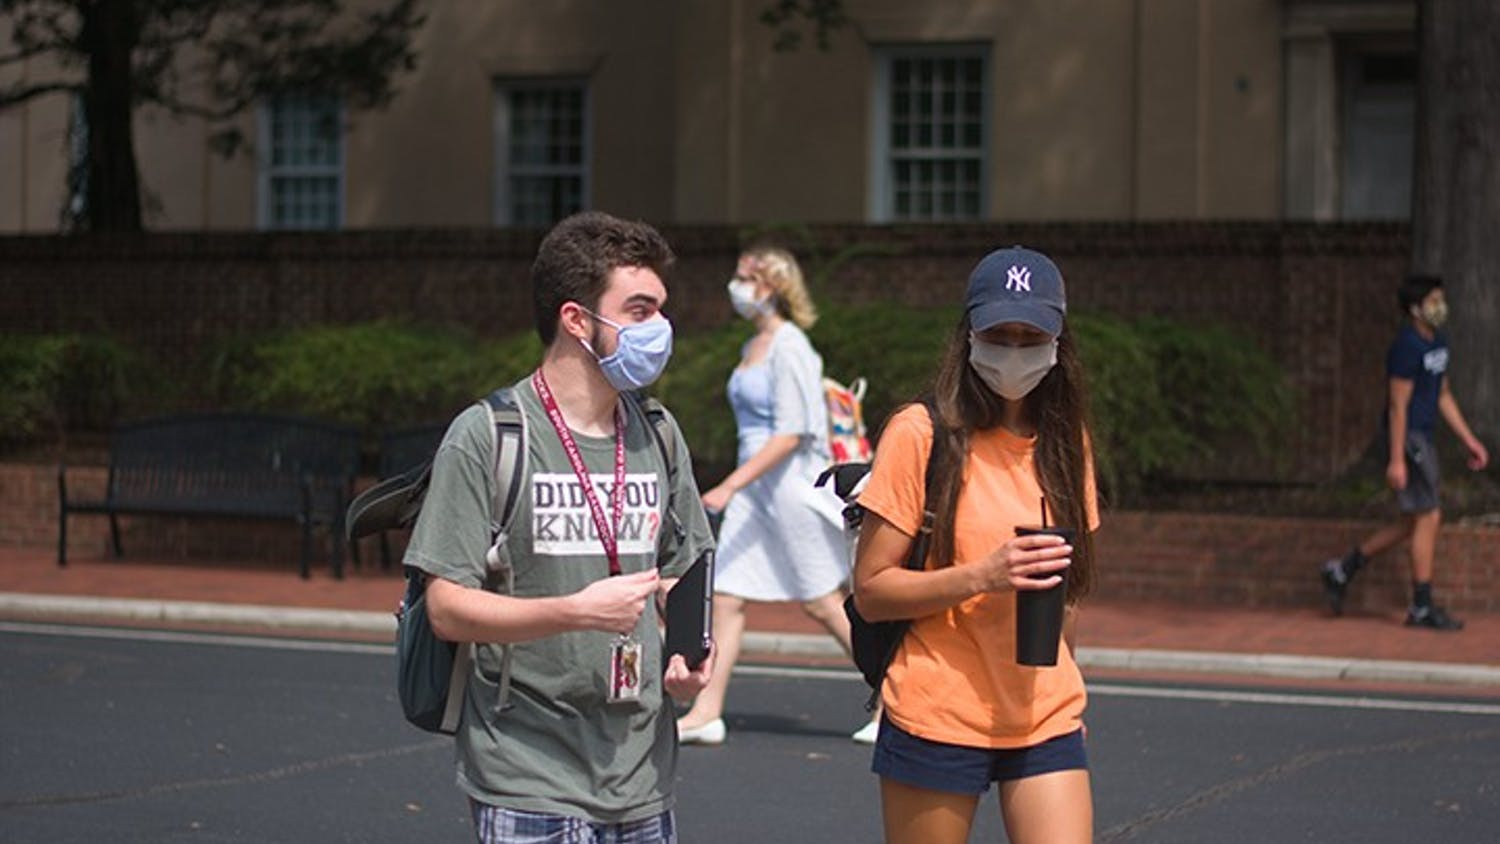 Students walk on campus with masks on. The university has documented over 1,000 student violations related to COVID-19 this semester.